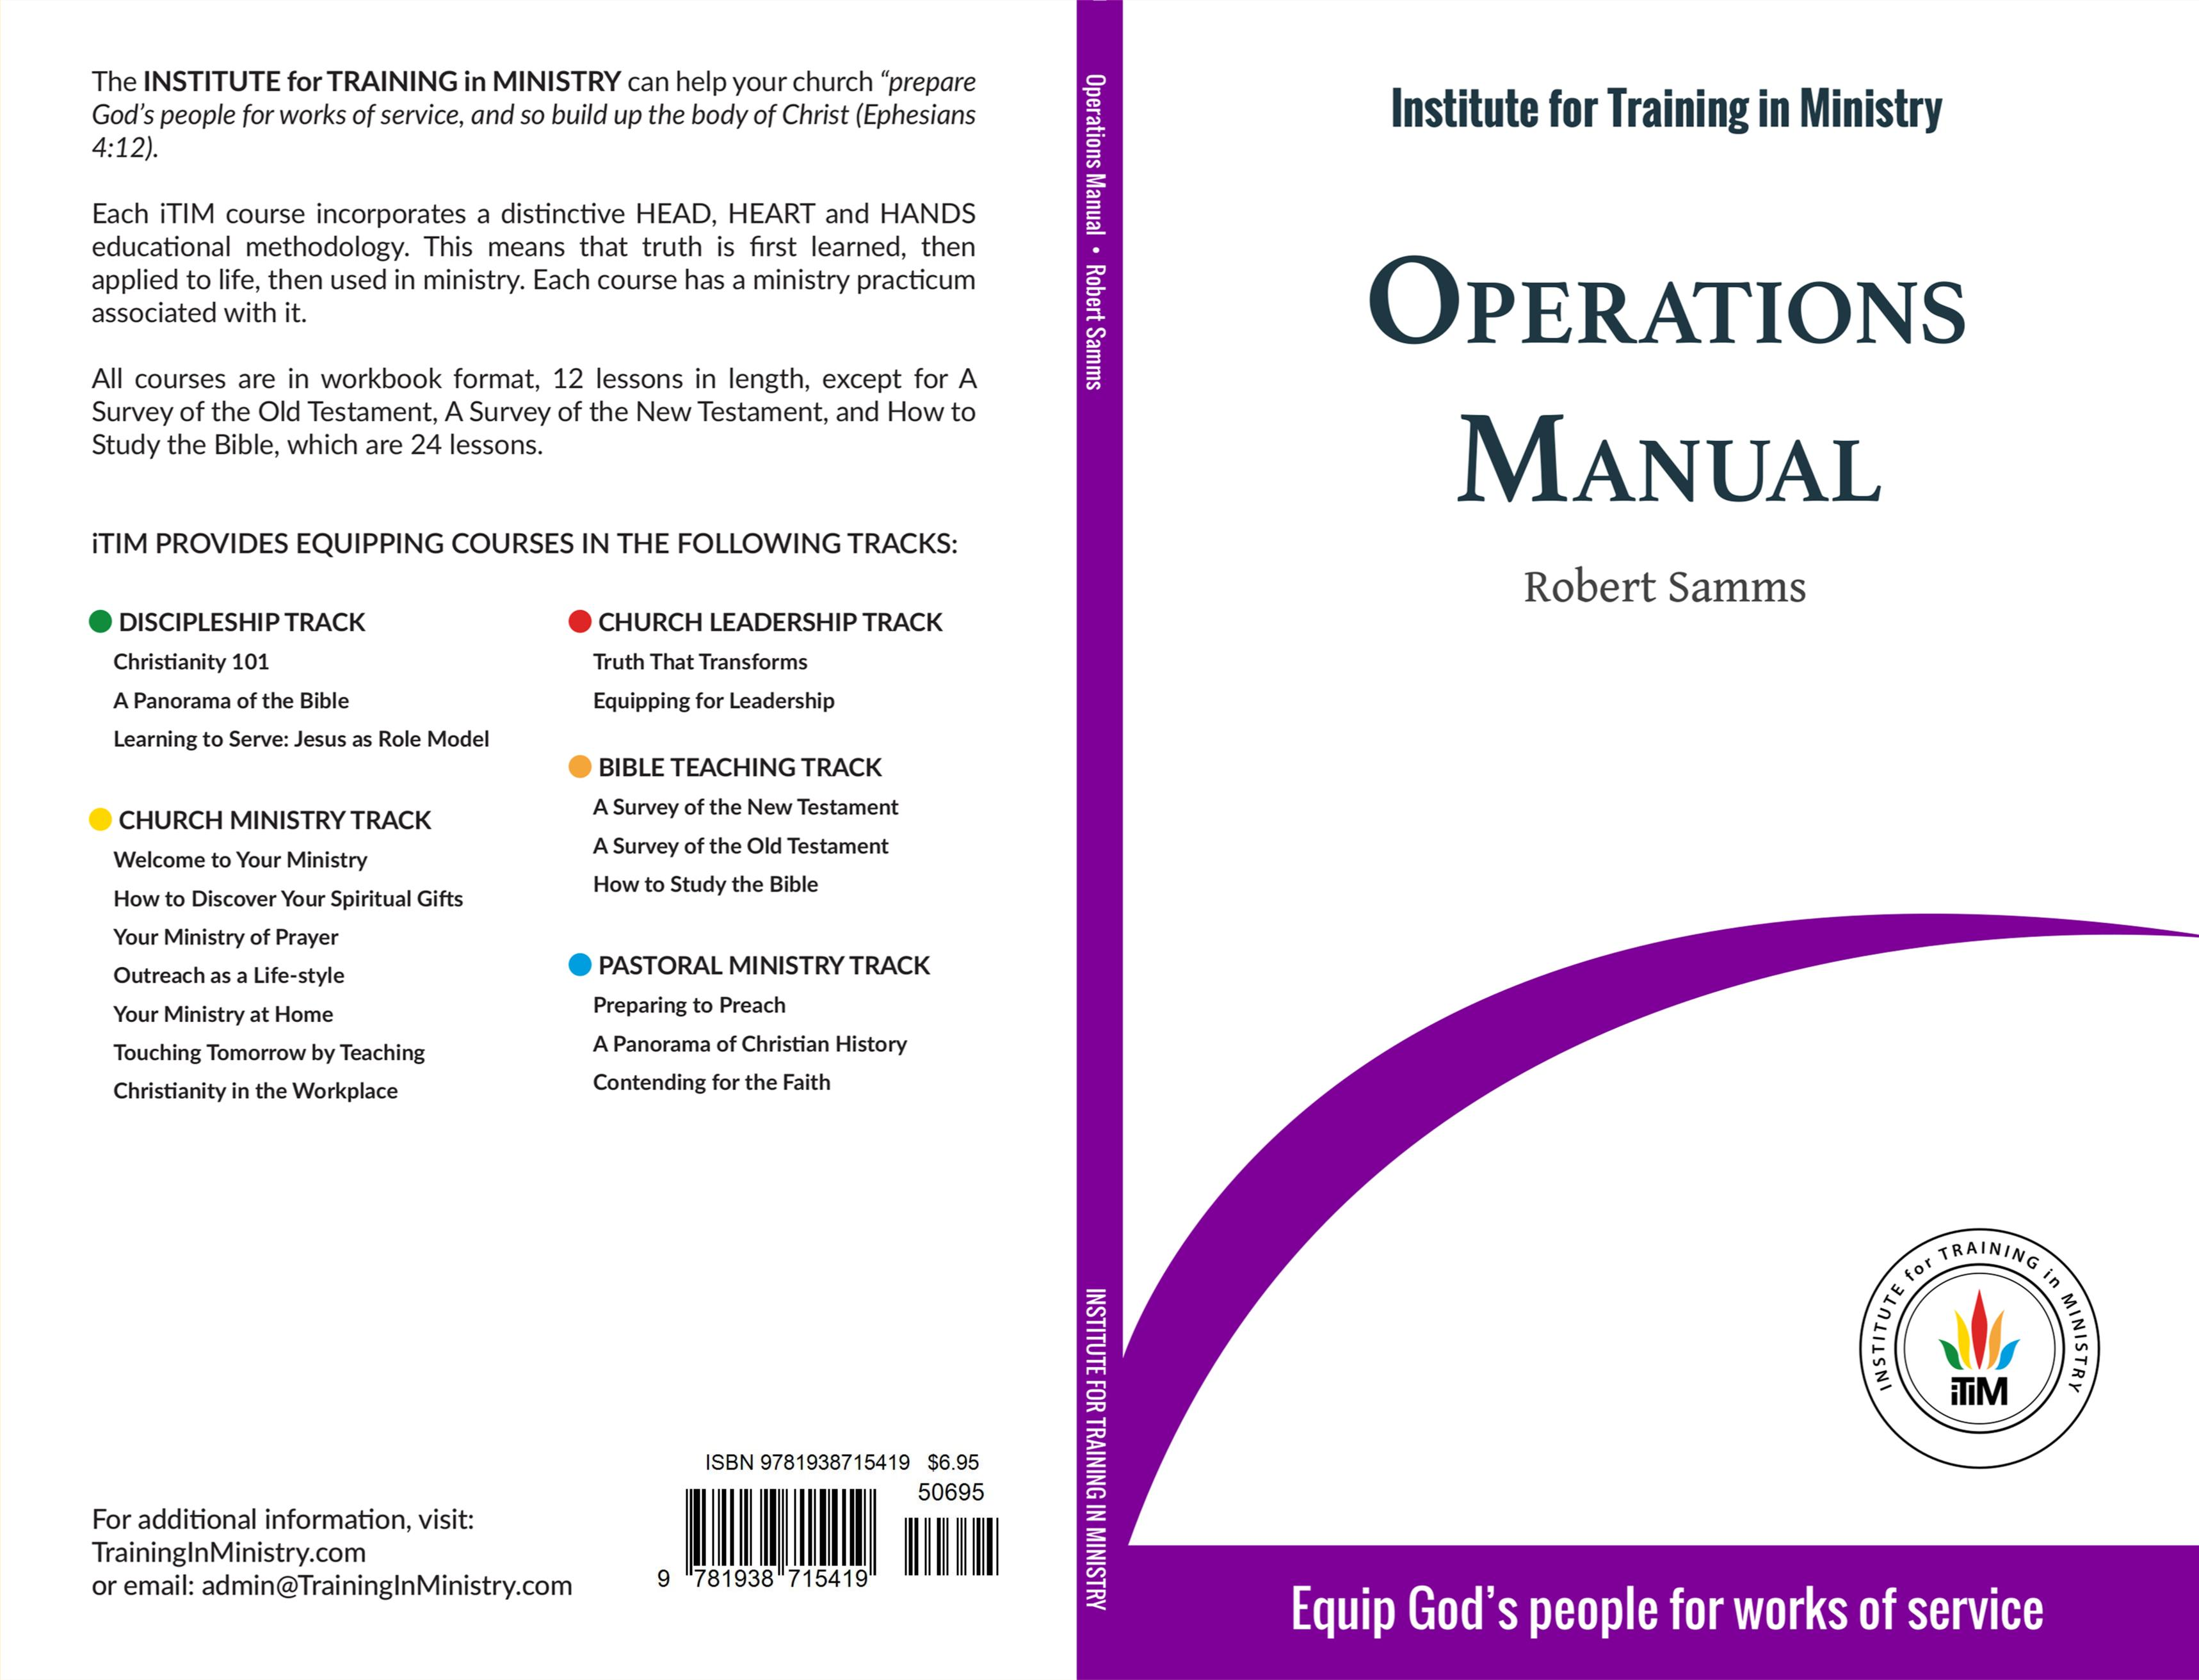 Operations Manual cover image